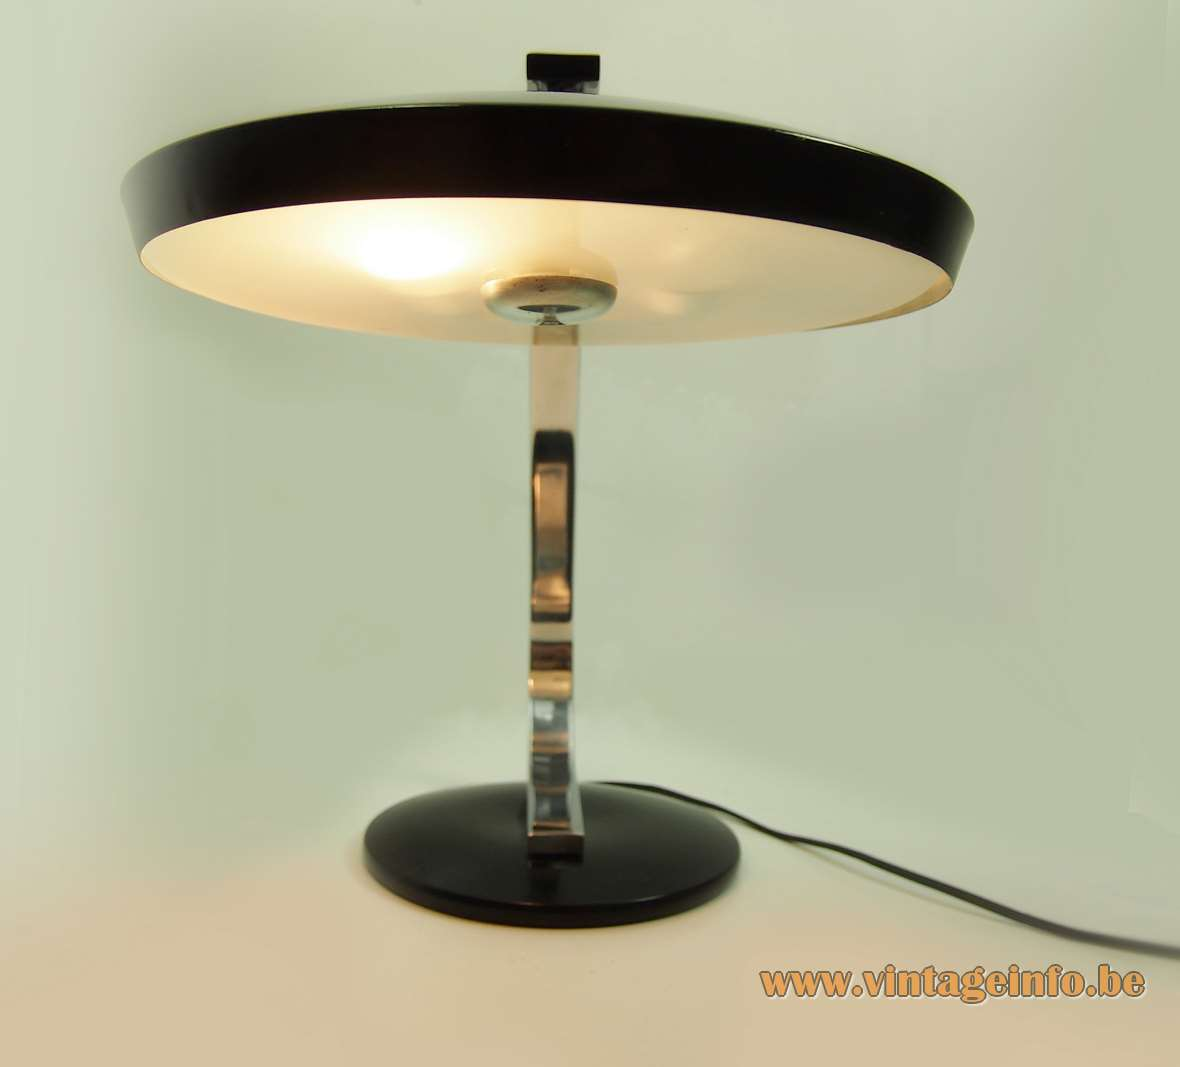 Fase Model 520-C desk lamp round base flat chrome curved rod round lampshade glass 1970s Spain